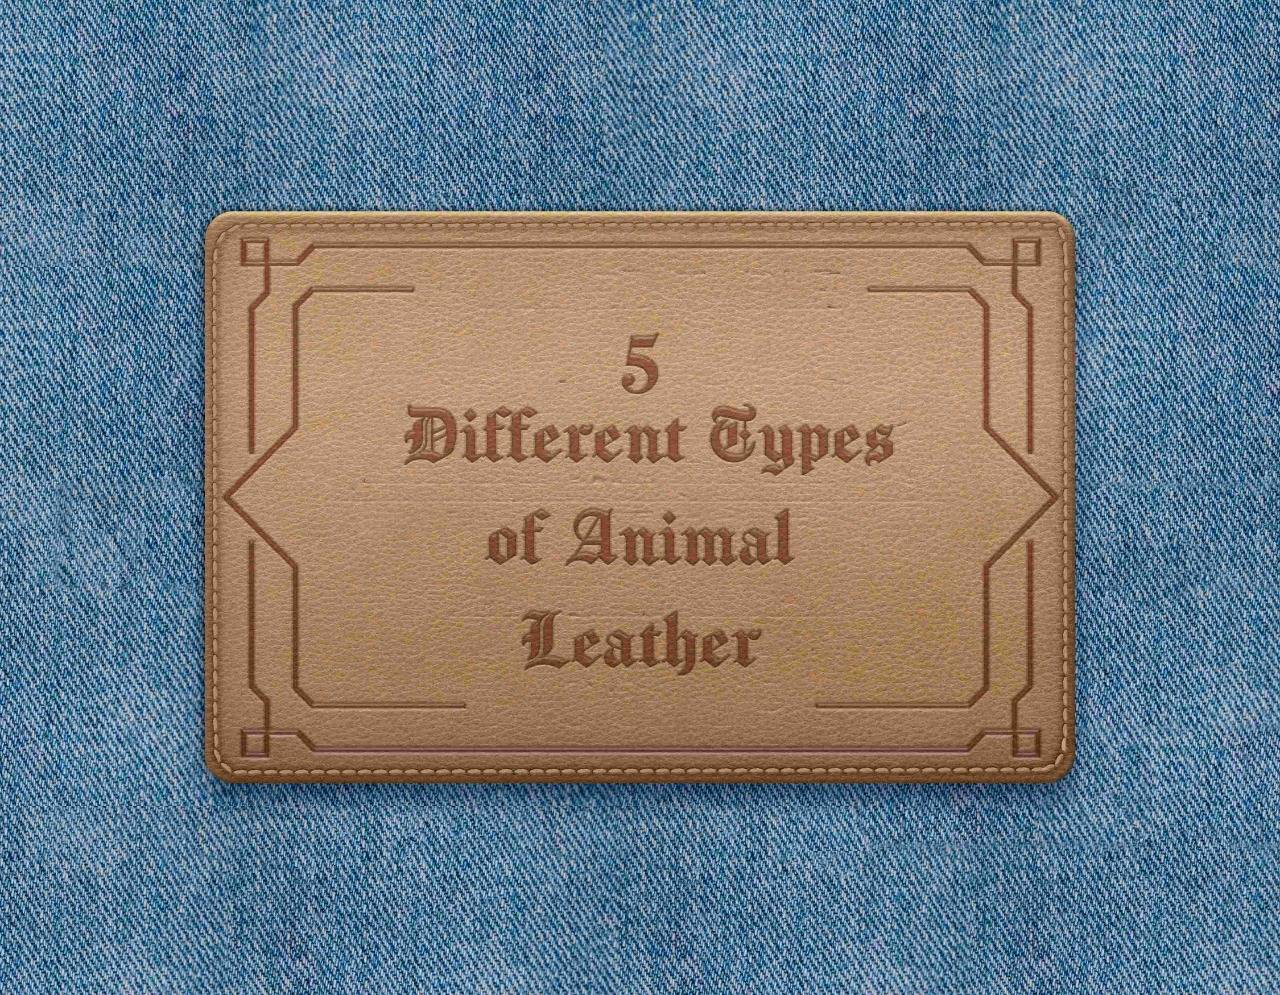 5 Different Types of Animal Leather And Their Uses